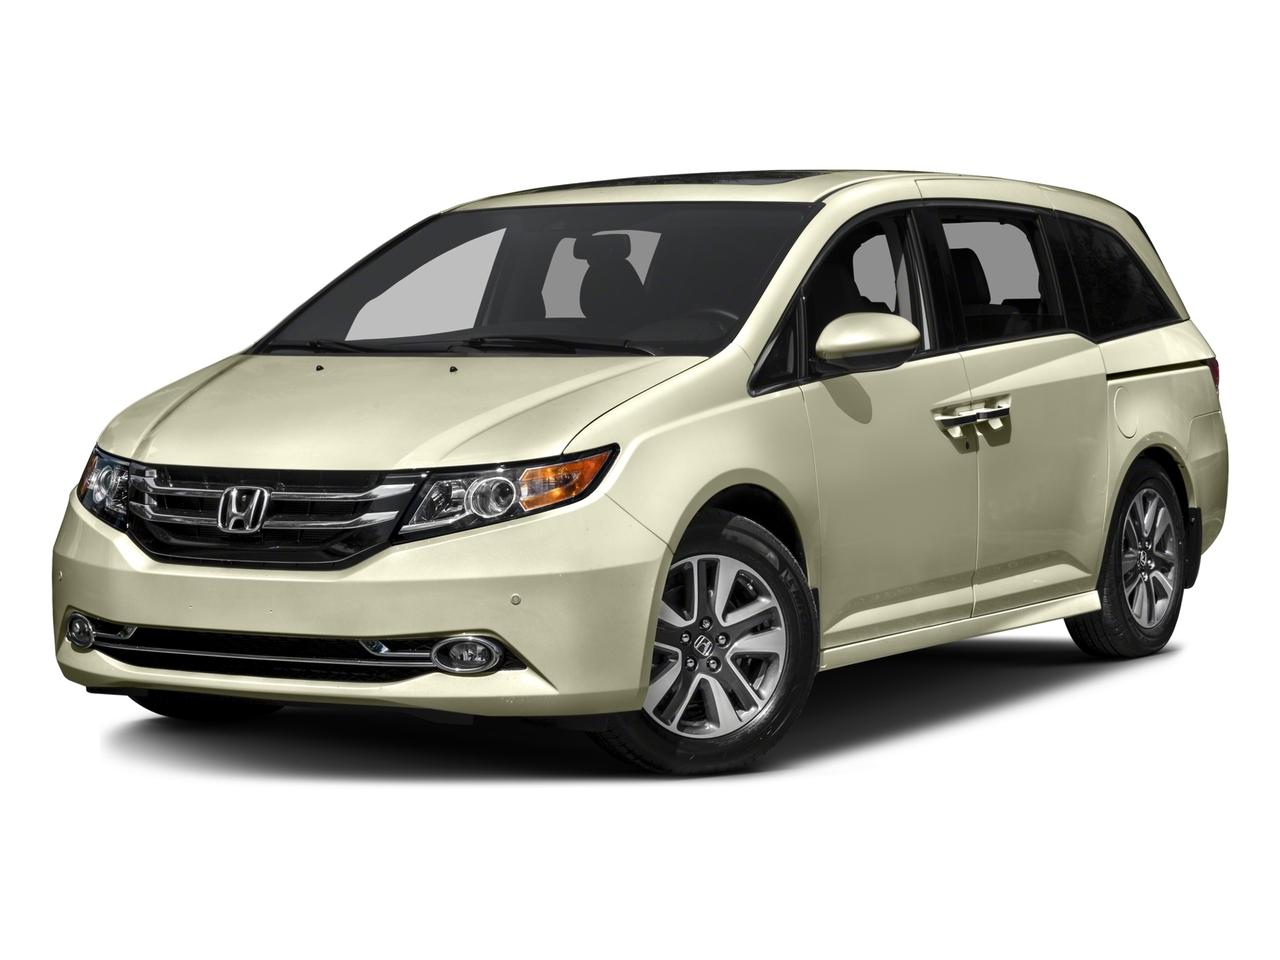 2016 Honda Odyssey Vehicle Photo in Colorado Springs, CO 80920